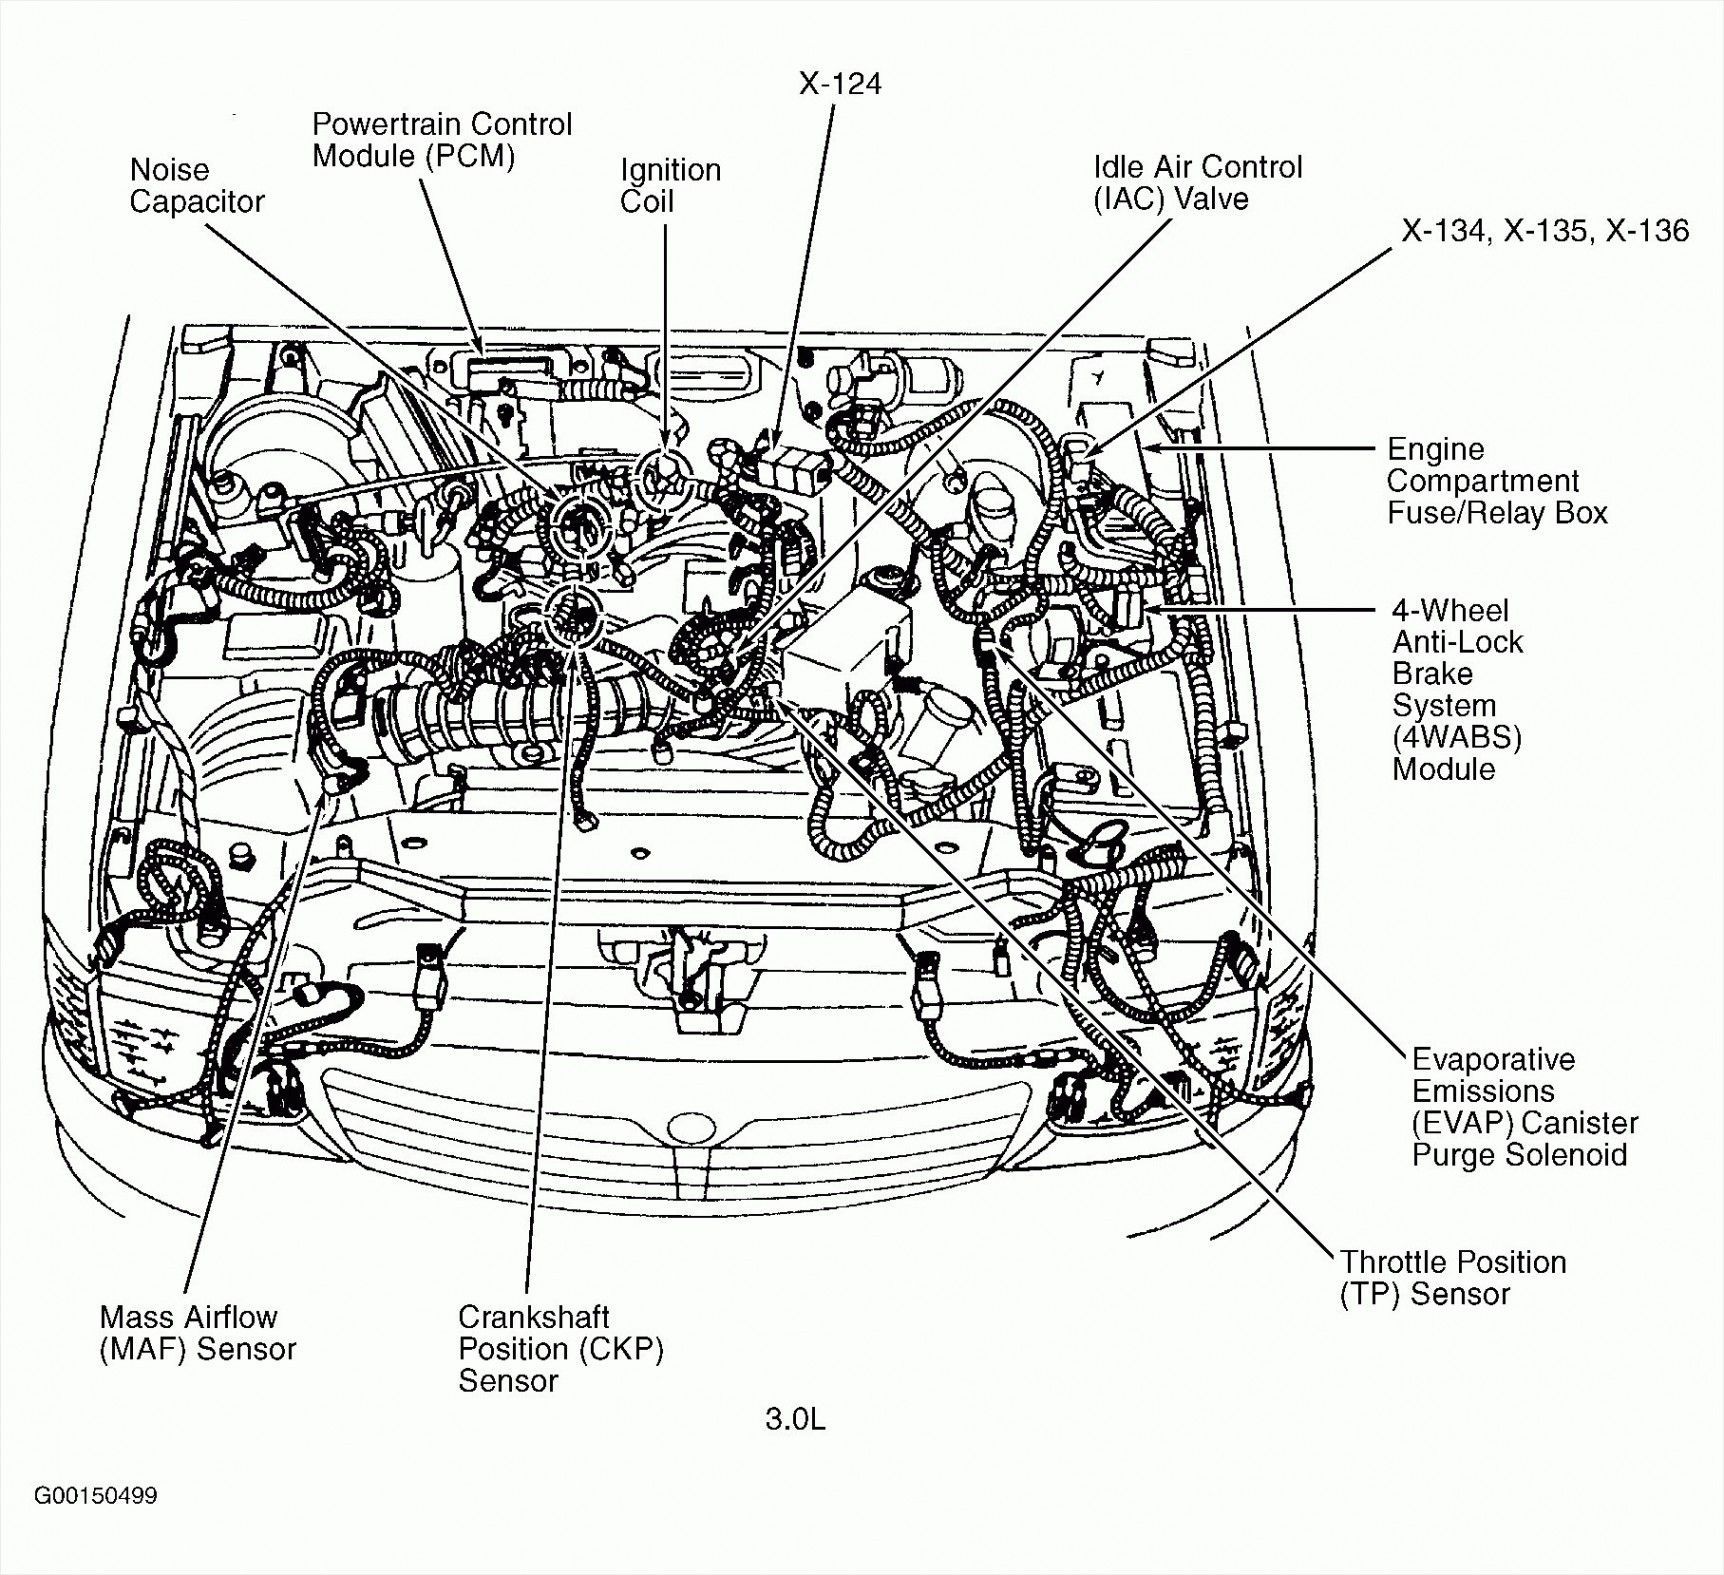 dodge ram 1500 fuel system diagram unique wiring diagram 2005 dodge ram 1500 diagram diagramsample  wiring diagram 2005 dodge ram 1500